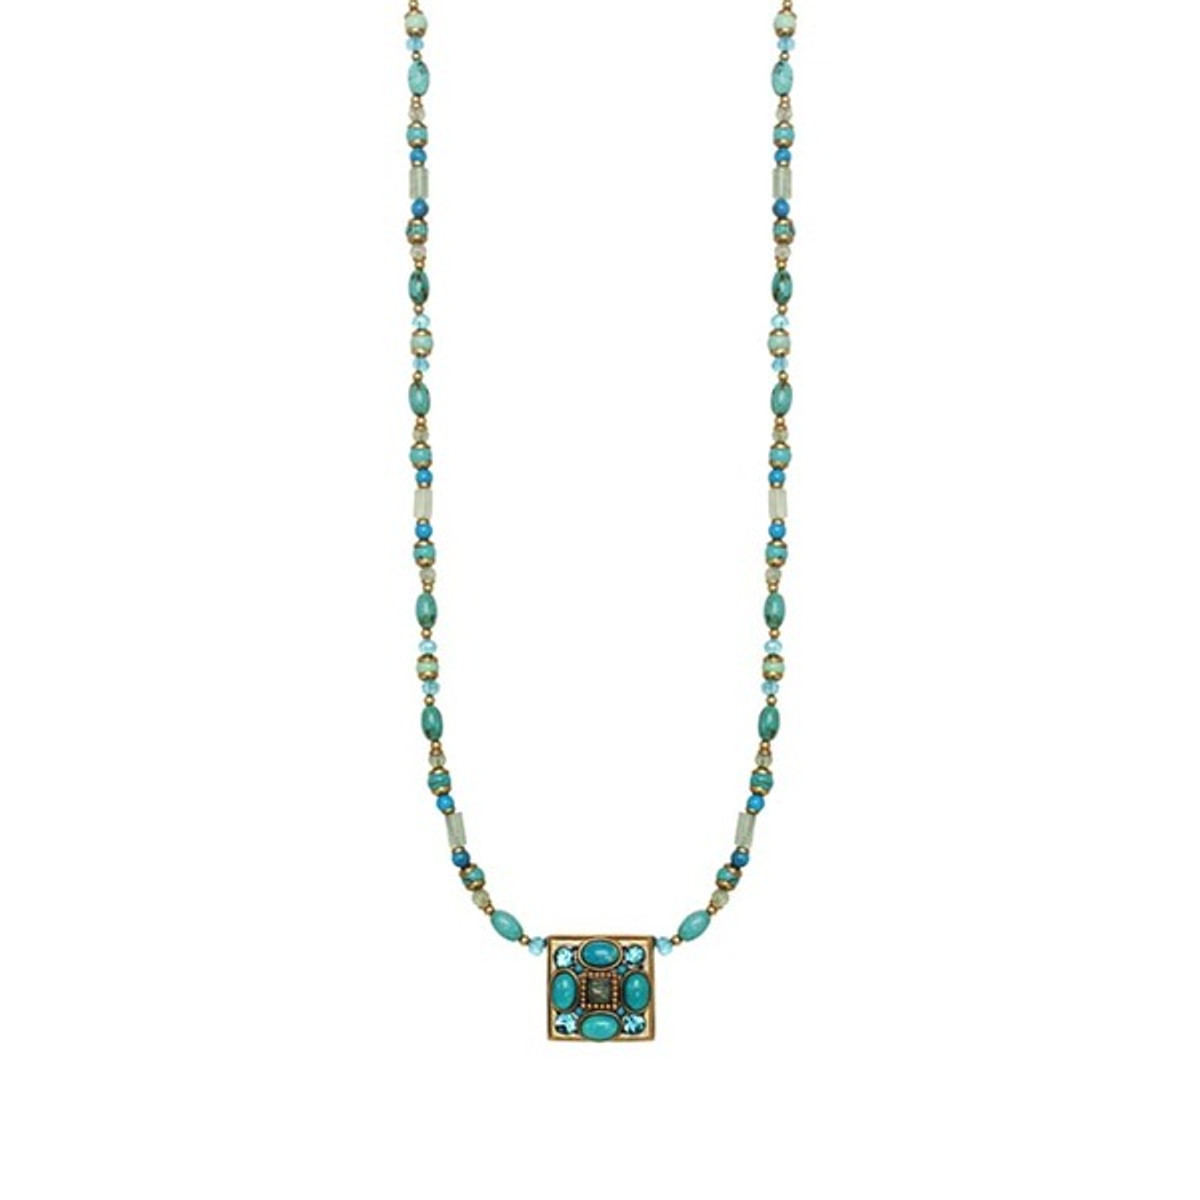 Nile necklace by Michal Golan Jewelry